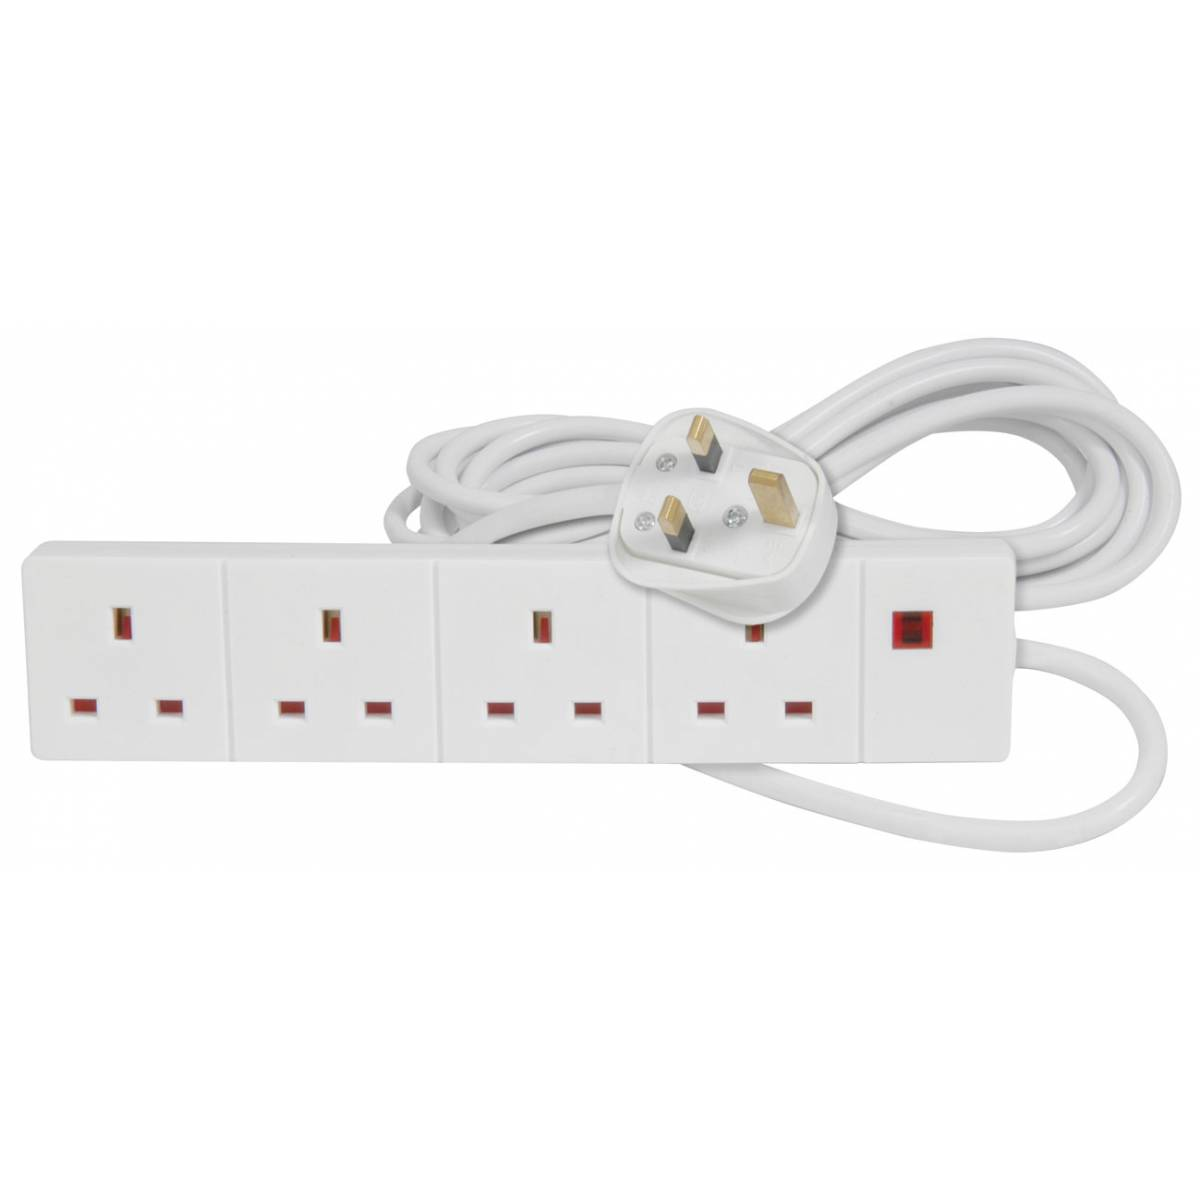 Extension Lead 6 Sockets : New extension leads multi sockets adapters gang uk mains